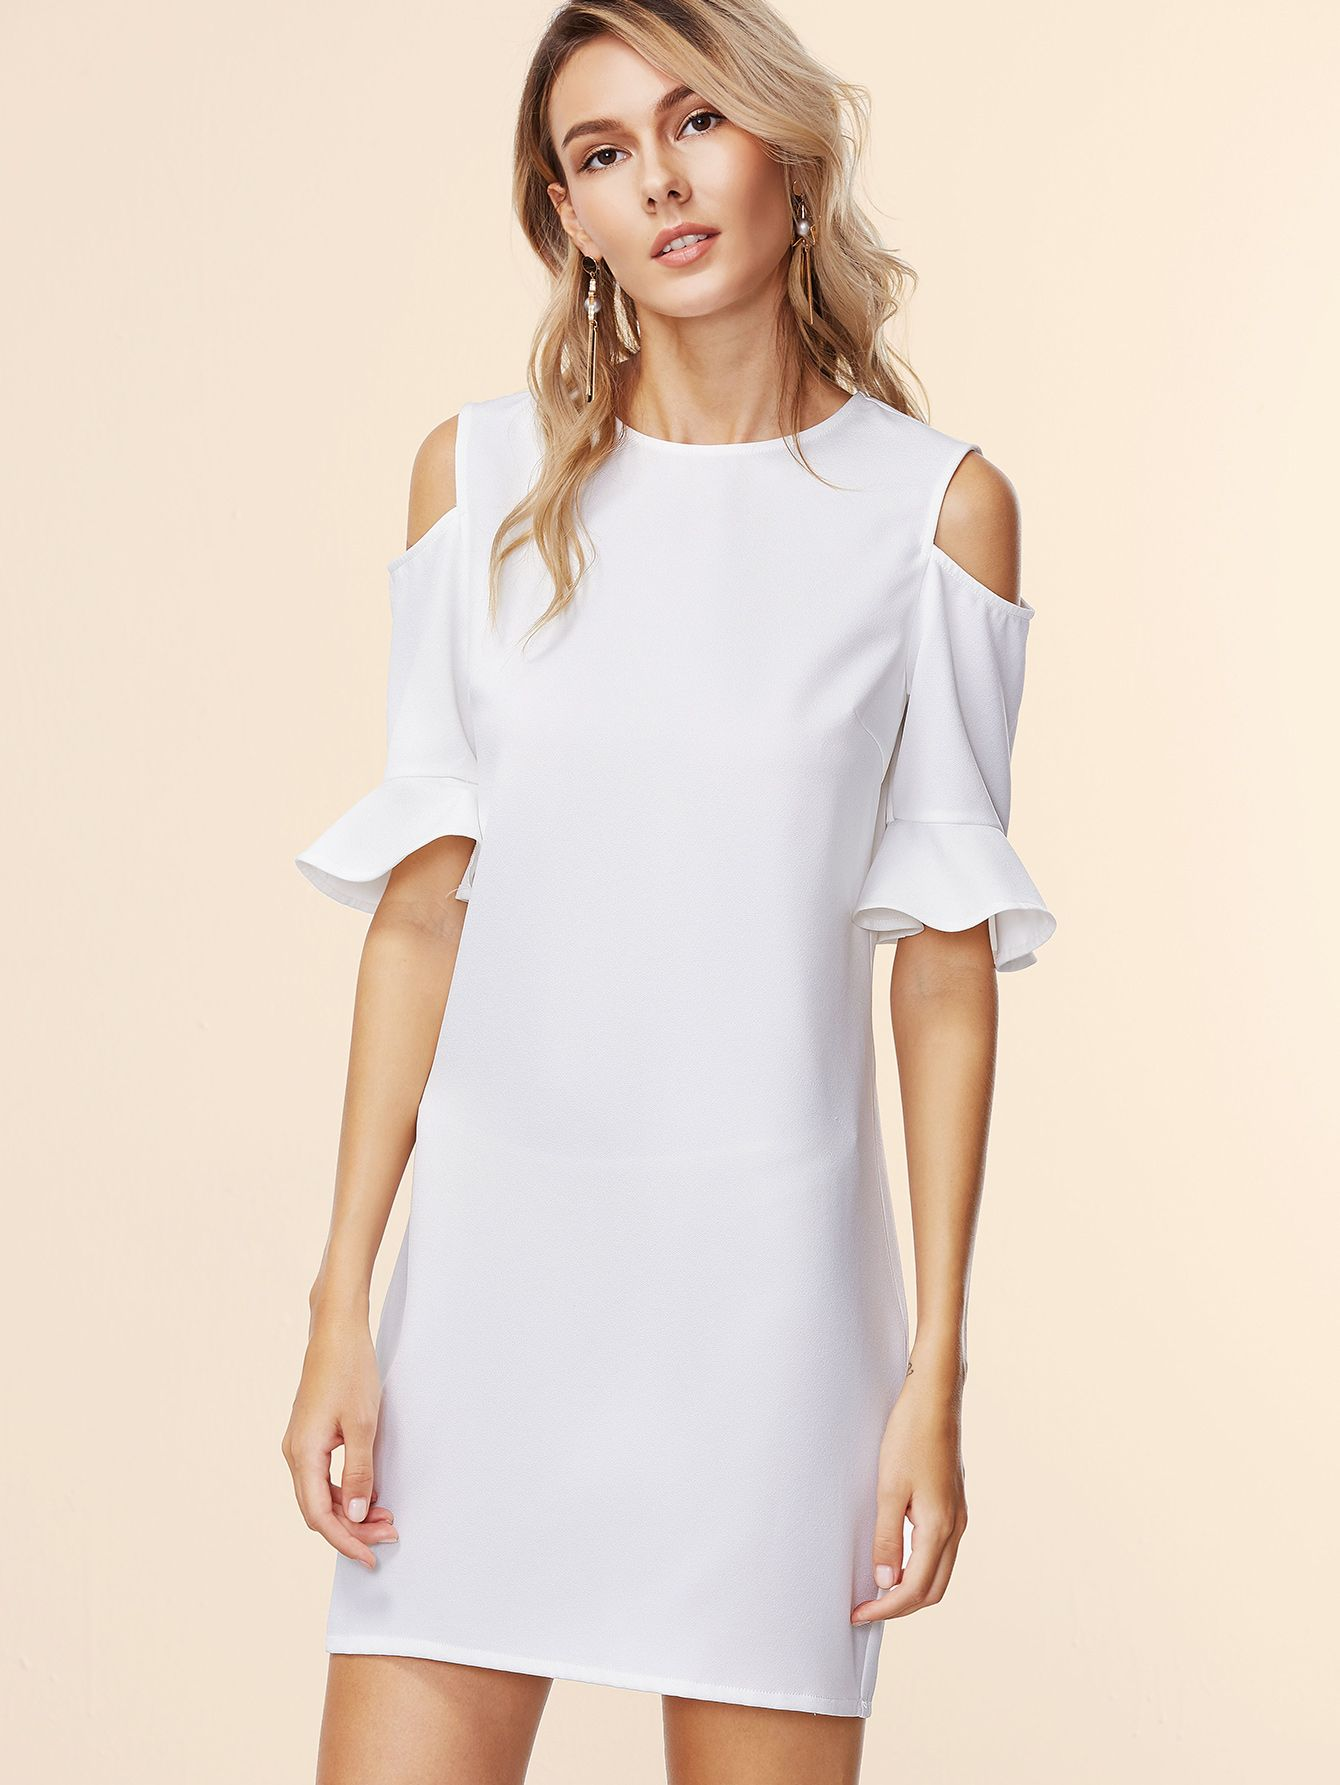 White Open Shoulder Ruffle Sleeve Sheath Dress — 0.00 € ---------color: White size: L,M,S,XS